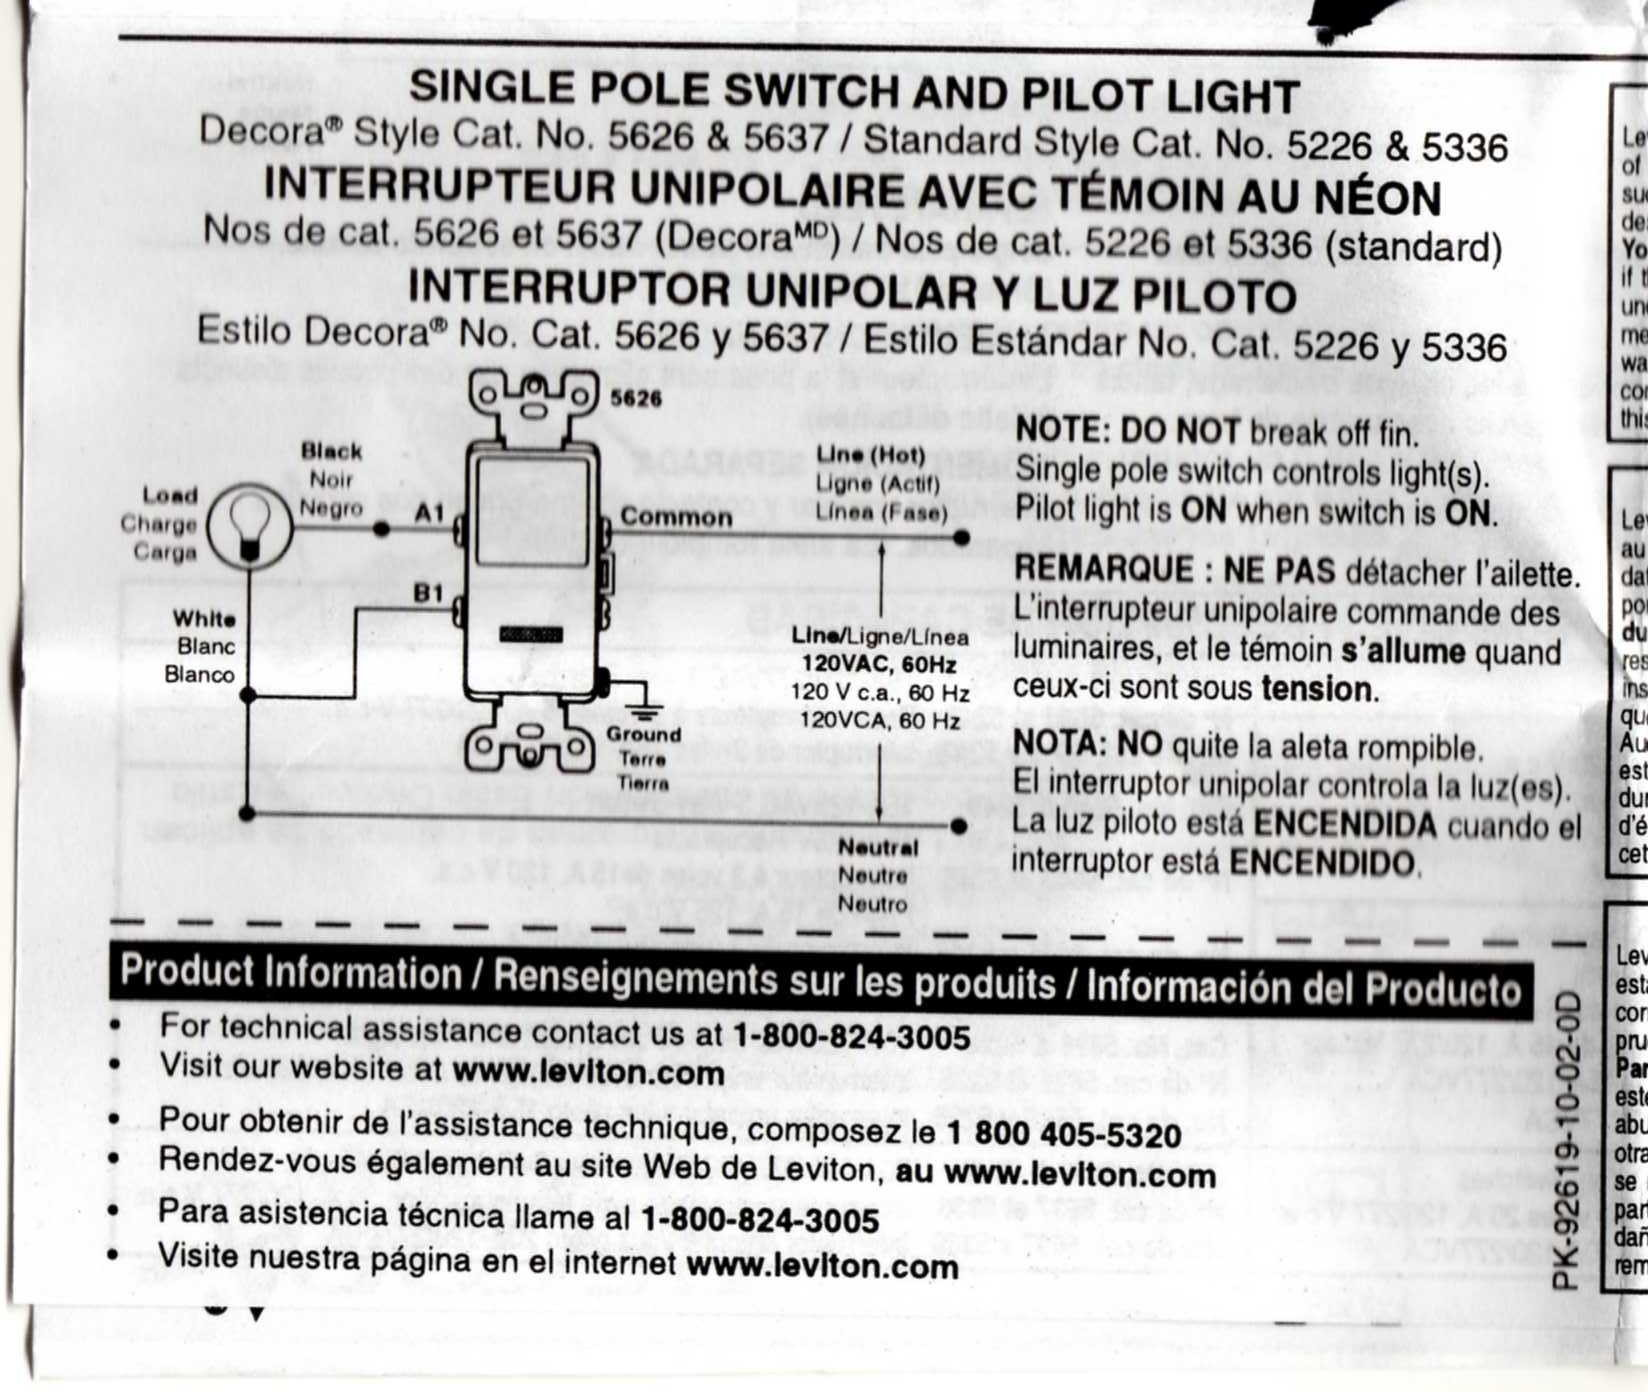 how to replace a single pole light switch how to wire a single pole pilot light switch to the upper